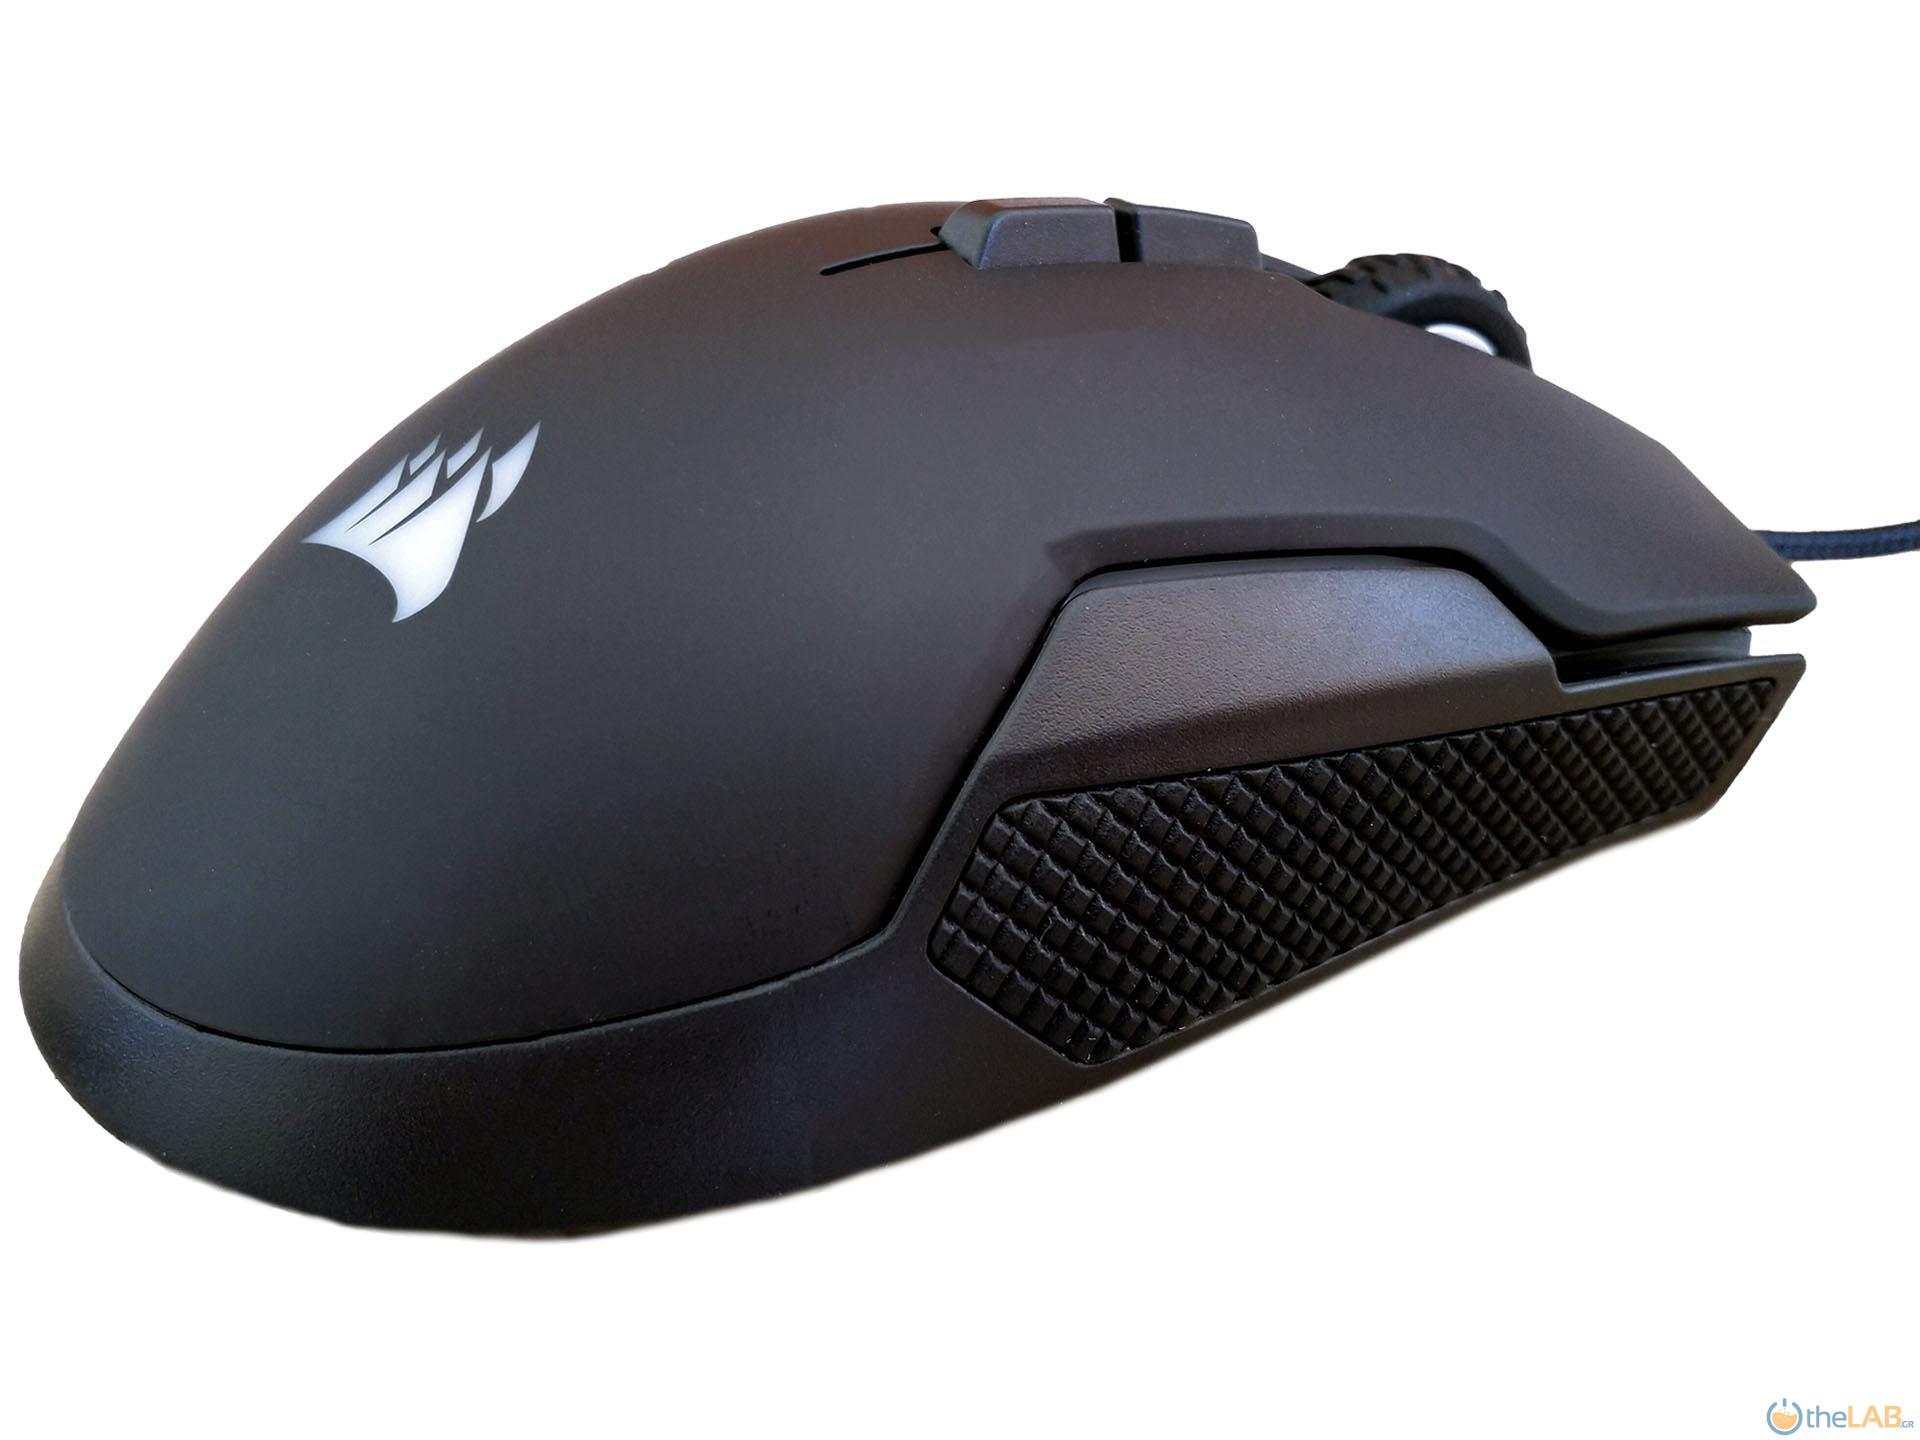 corsair-glaive-rgb-pro-gaming-mouse-review-mouse-right-side.jpg